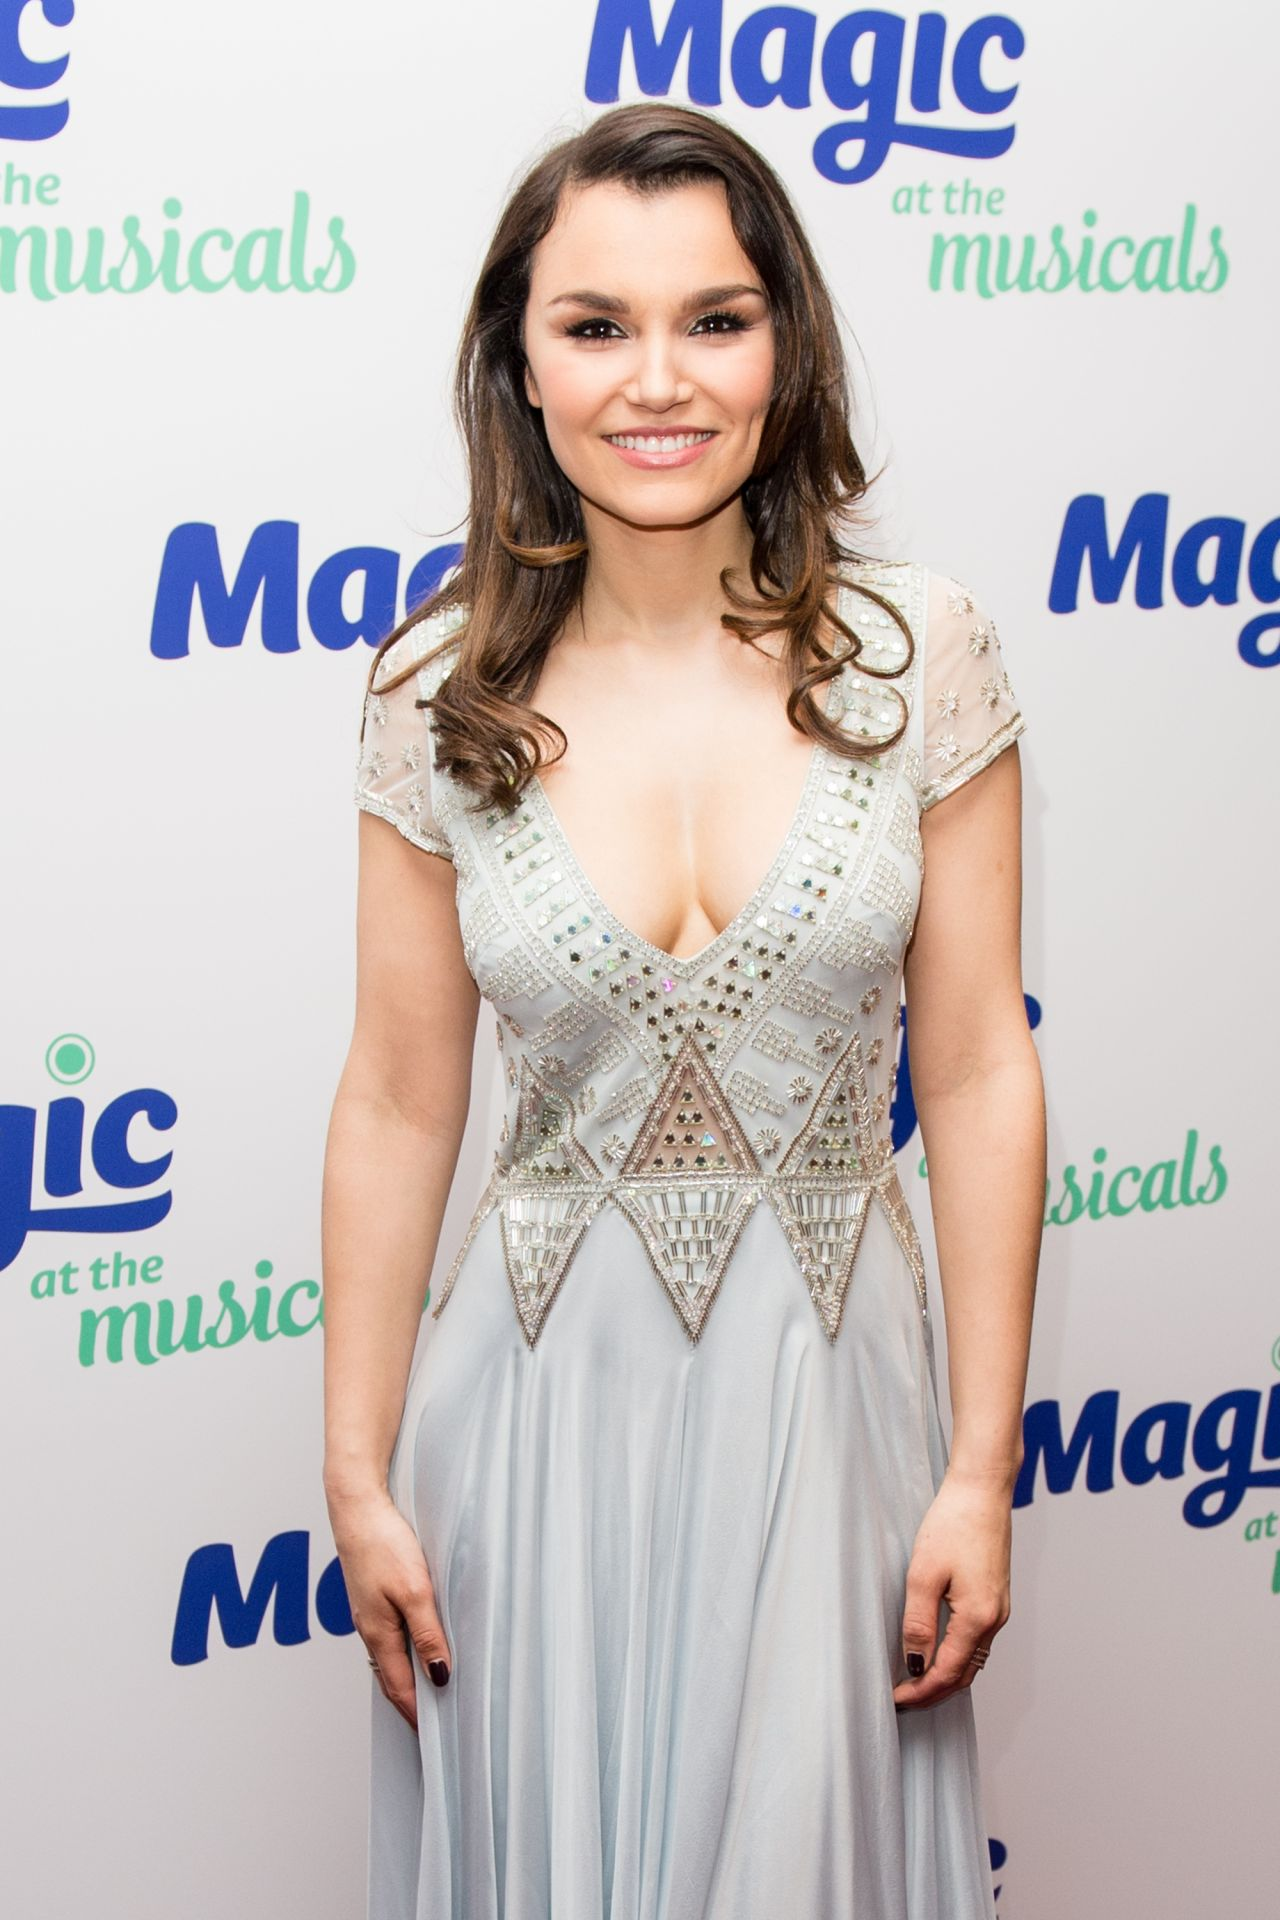 Samantha barks magic at the musicals in london uk nudes (81 photo), Feet Celebrity fotos